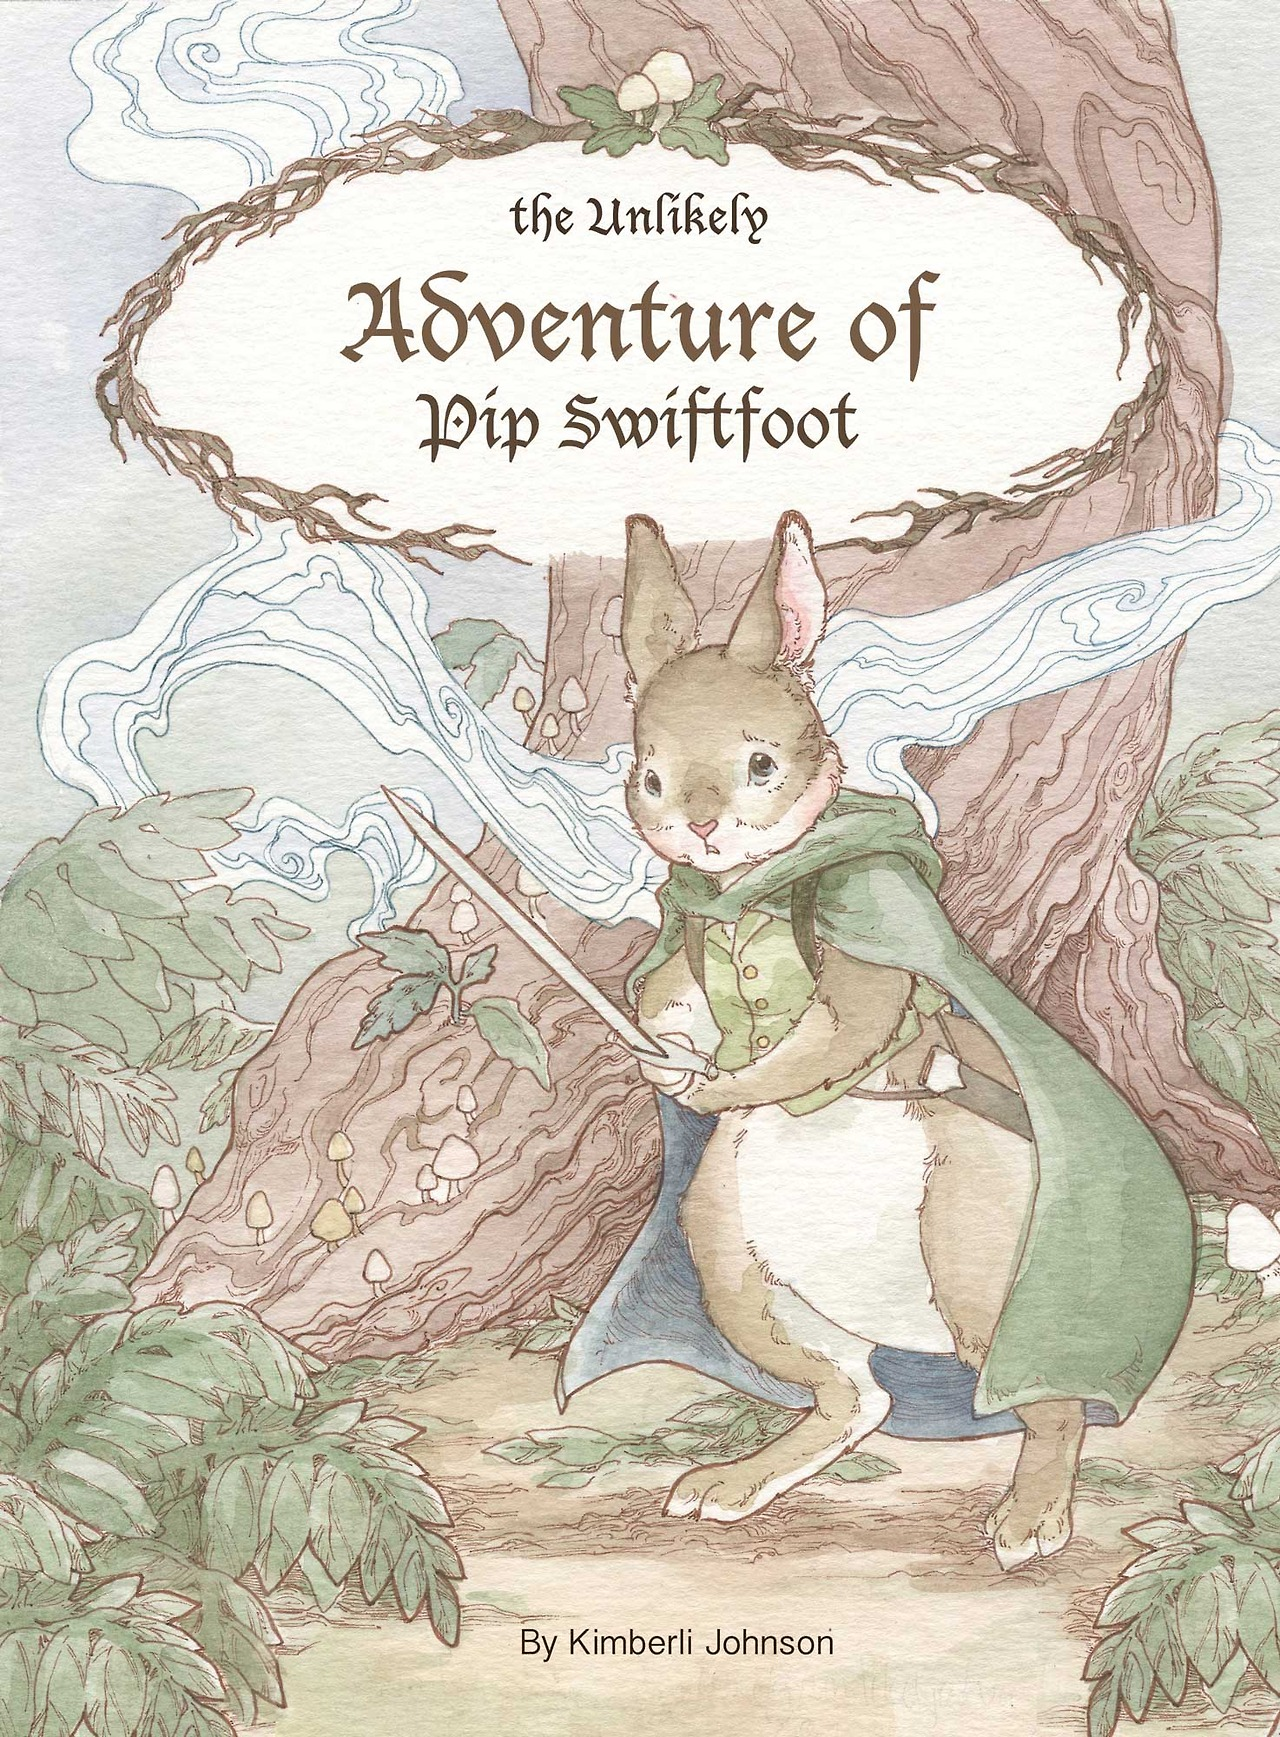 Kimberli Johnson's web comic, The Unlikely Adventure of Pip Swiftfoot, is an uplifting story with gorgeous and meticulous ink and watercolor illustrations.